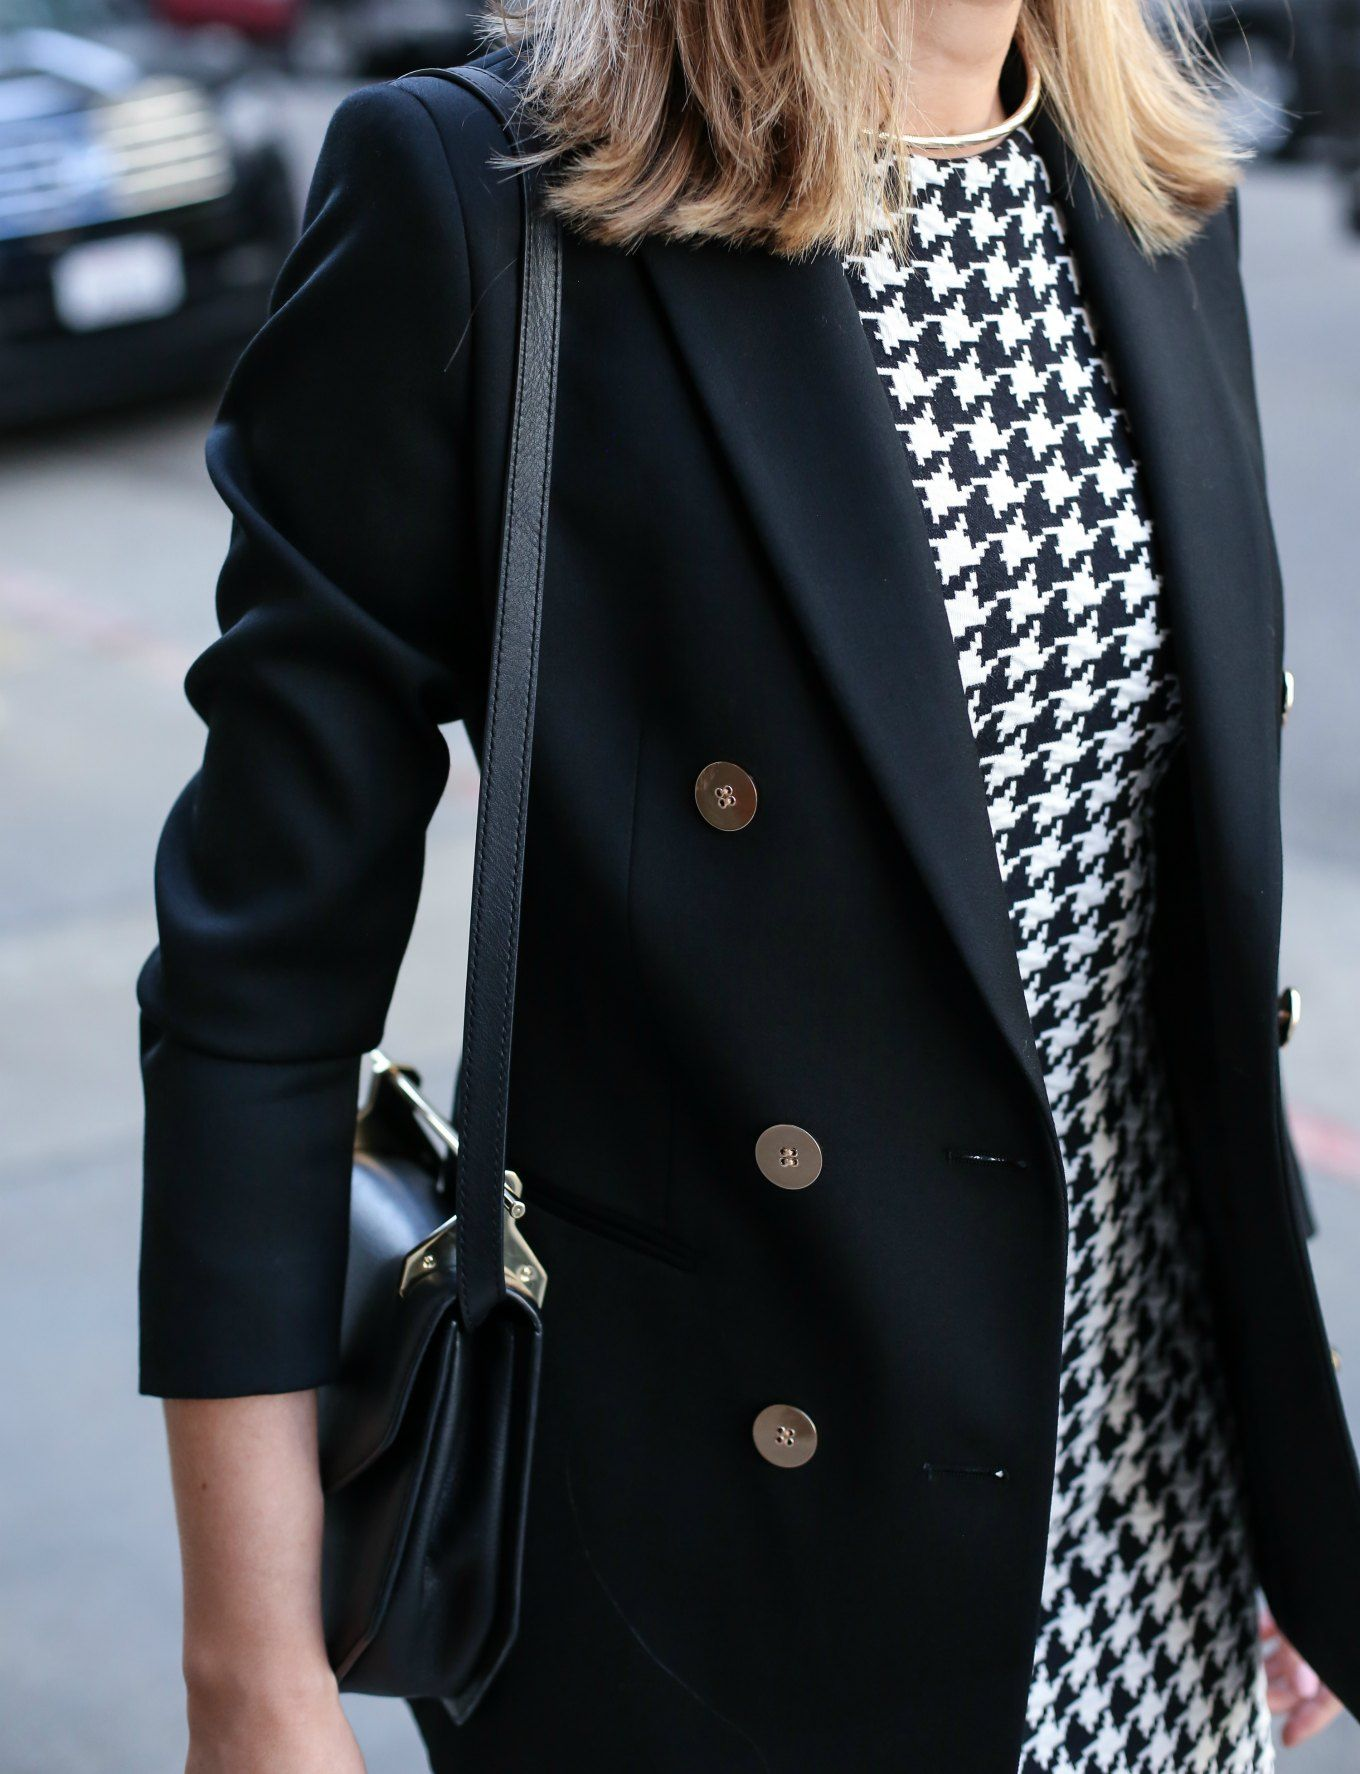 Houndstooth Sheath and Double-Breasted Blazer - MEMORANDUM, formerly The Classy CubicleMEMORANDUM, formerly The Classy Cubicle